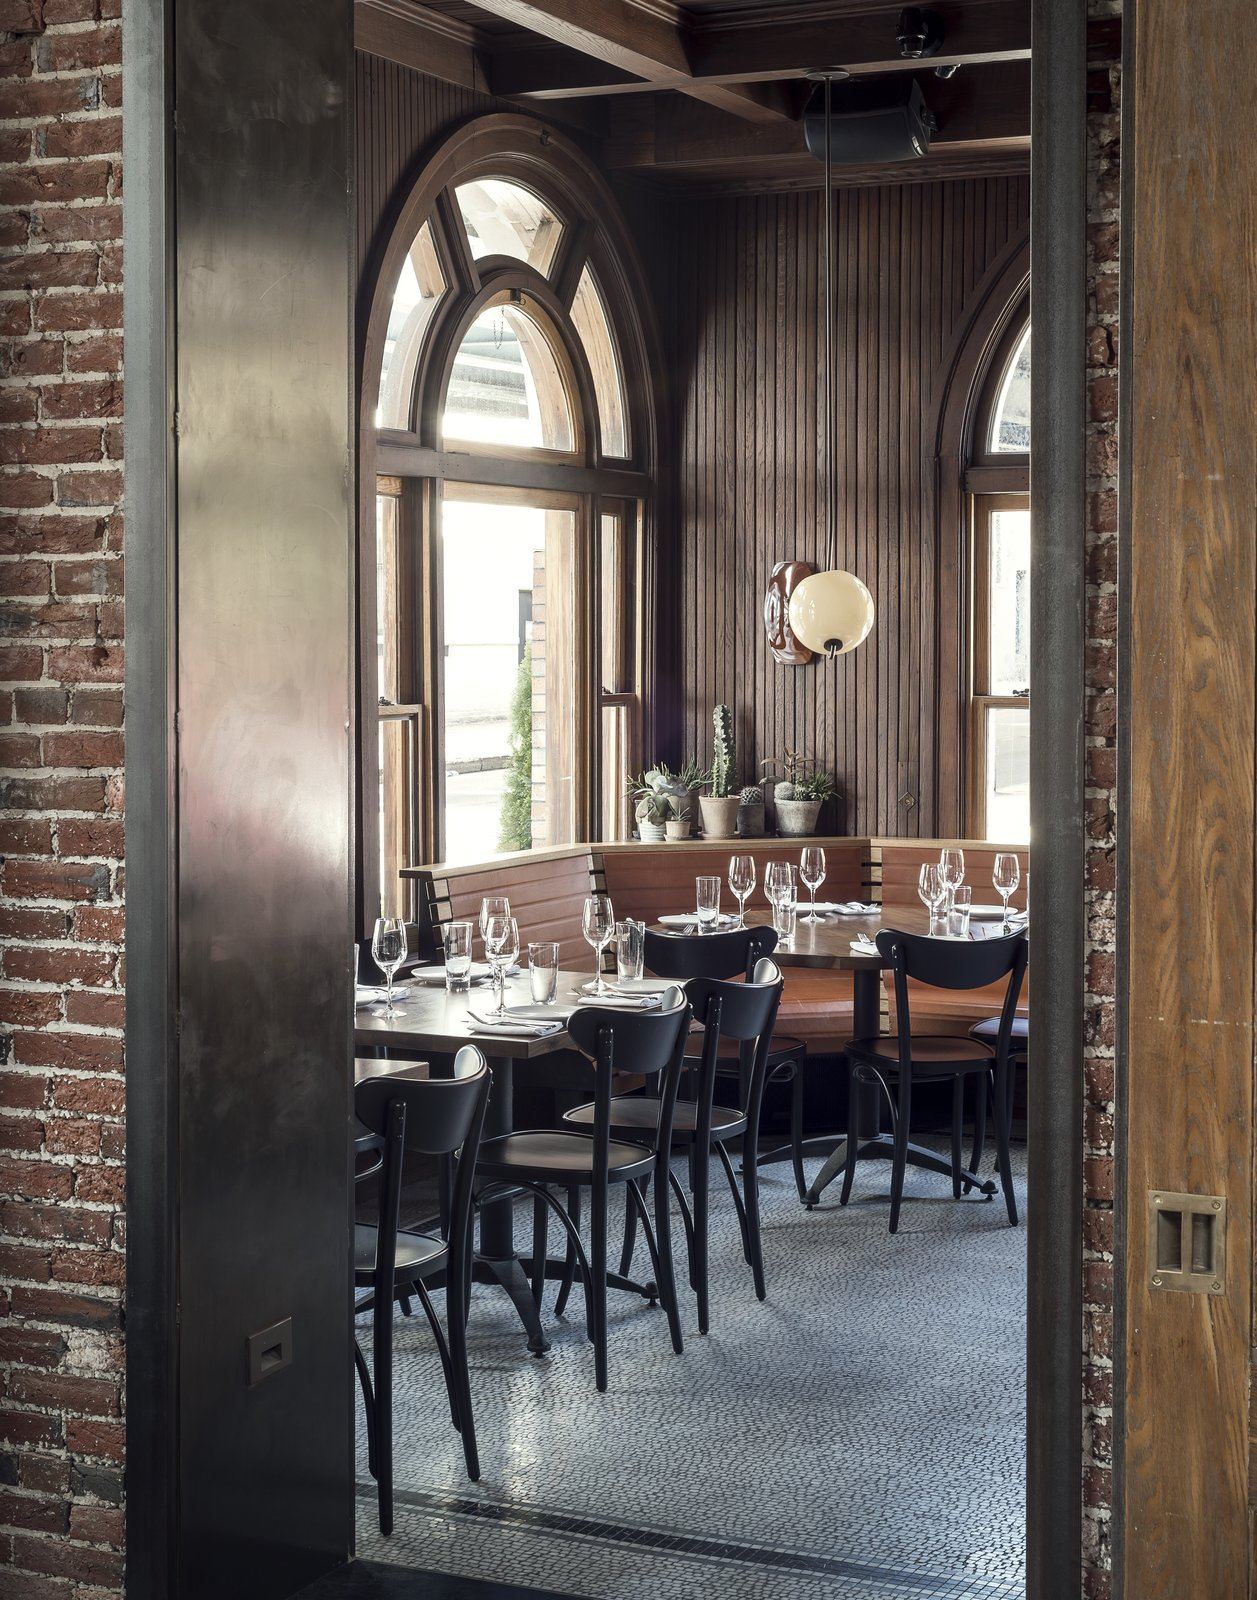 Simple pendant lighting, succulent greenery, and leather booths are simple, thoughtful elements that decorate the chic eatery.